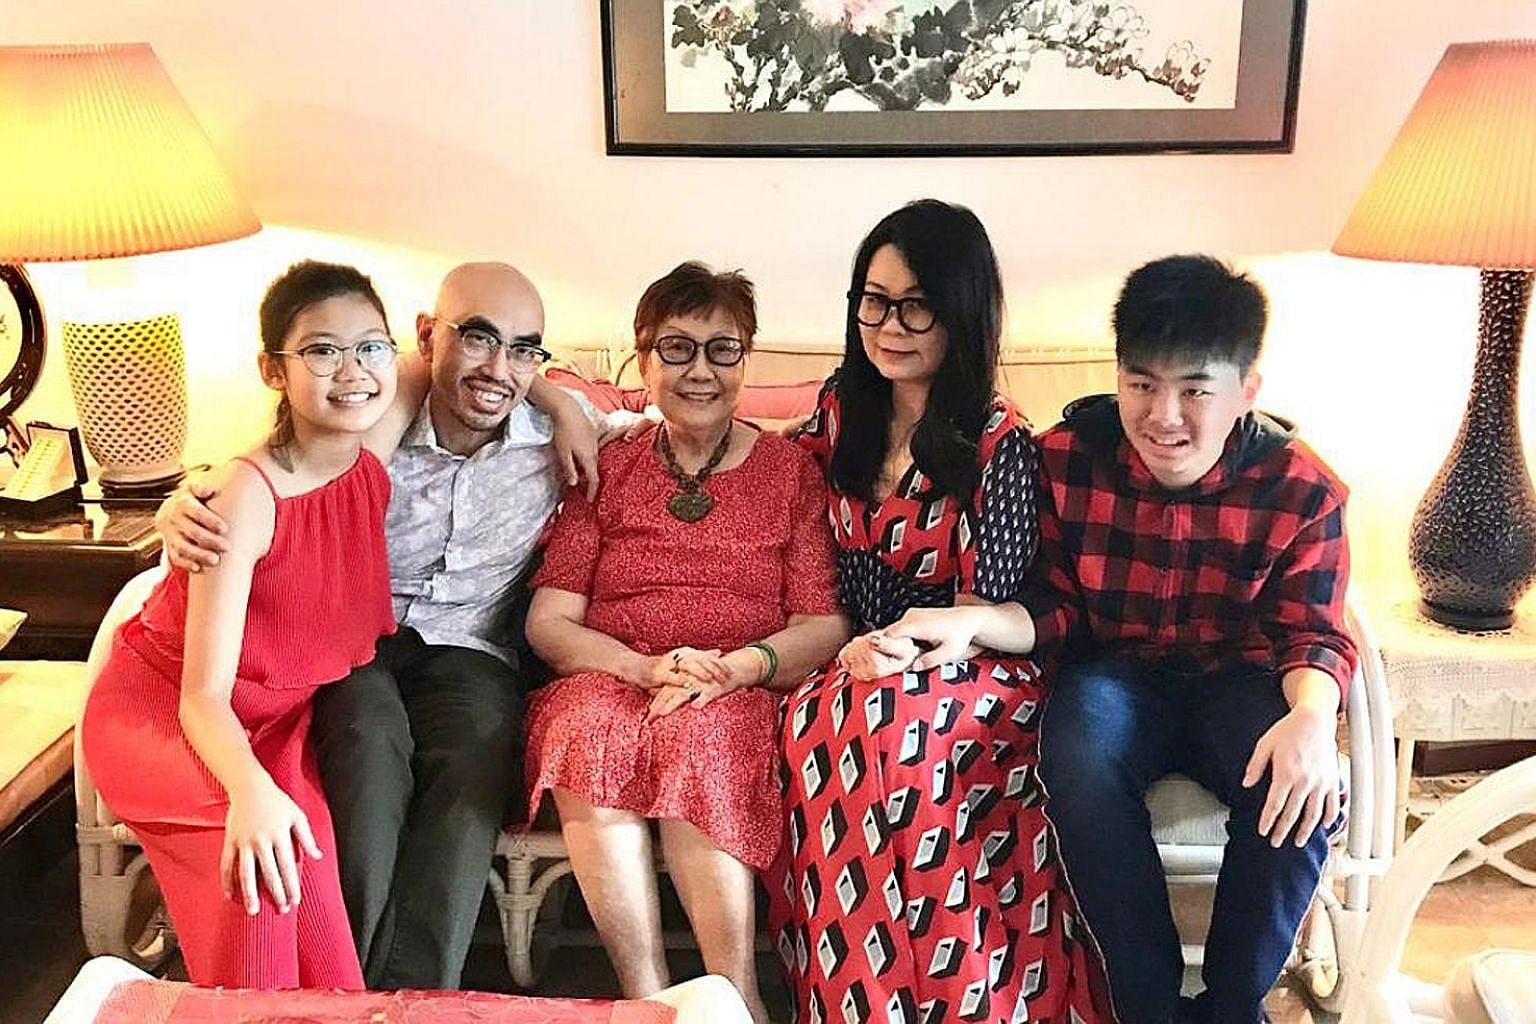 Mrs Florence Choy (next to her son Julian) says he has moderate autism and misses going to school, working out at the gym and having play dates with his friends - and sometimes has a meltdown. Ms Magdalene Ong has kept her son Chalmers Wong occupied